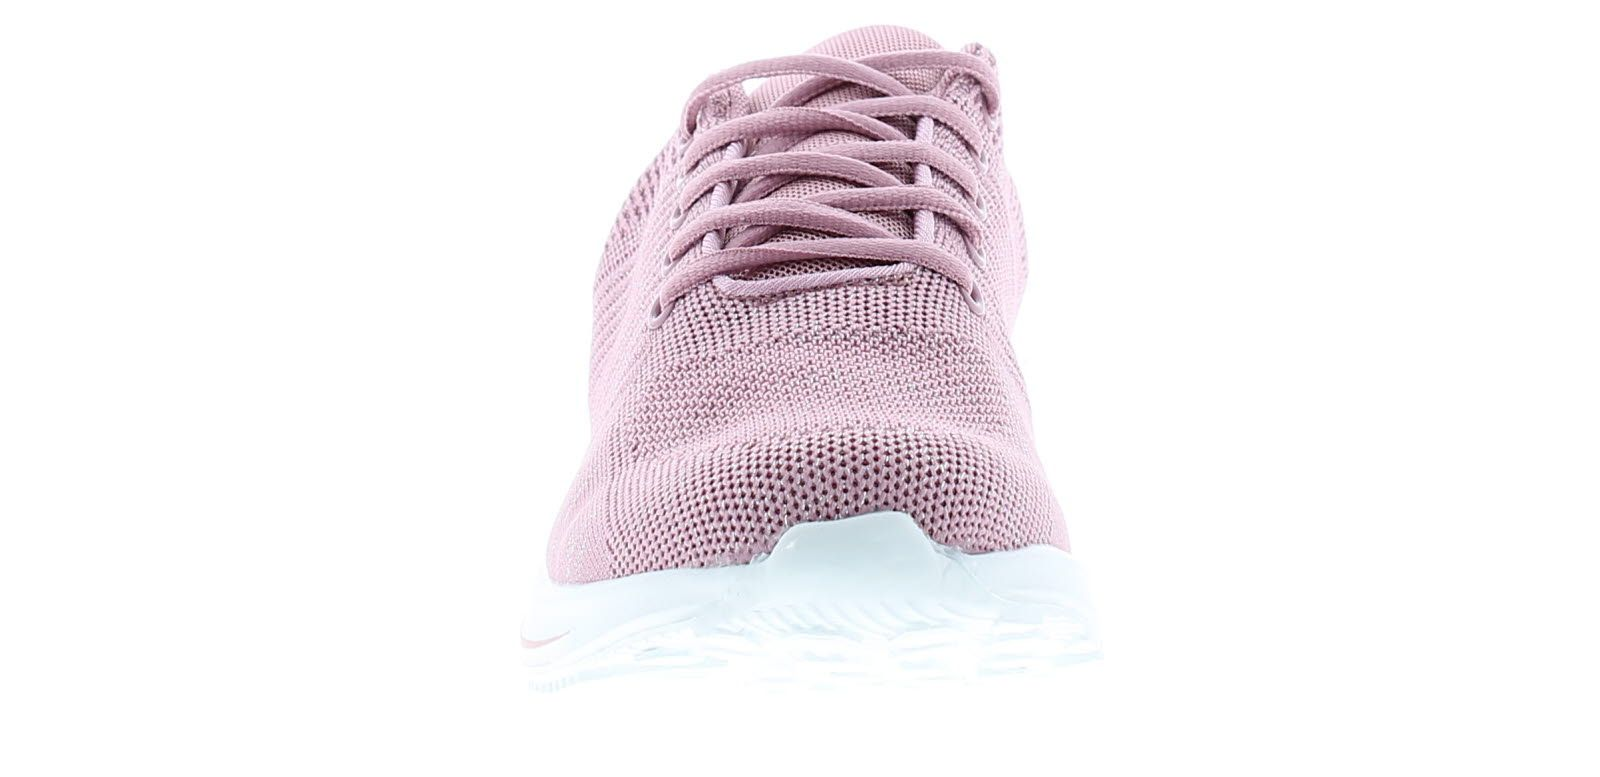 Ladies Knitt Upper Trainers 5 Eyelet Lace Fastening White Eva/Phylon Sole Unit With Contrast Colour